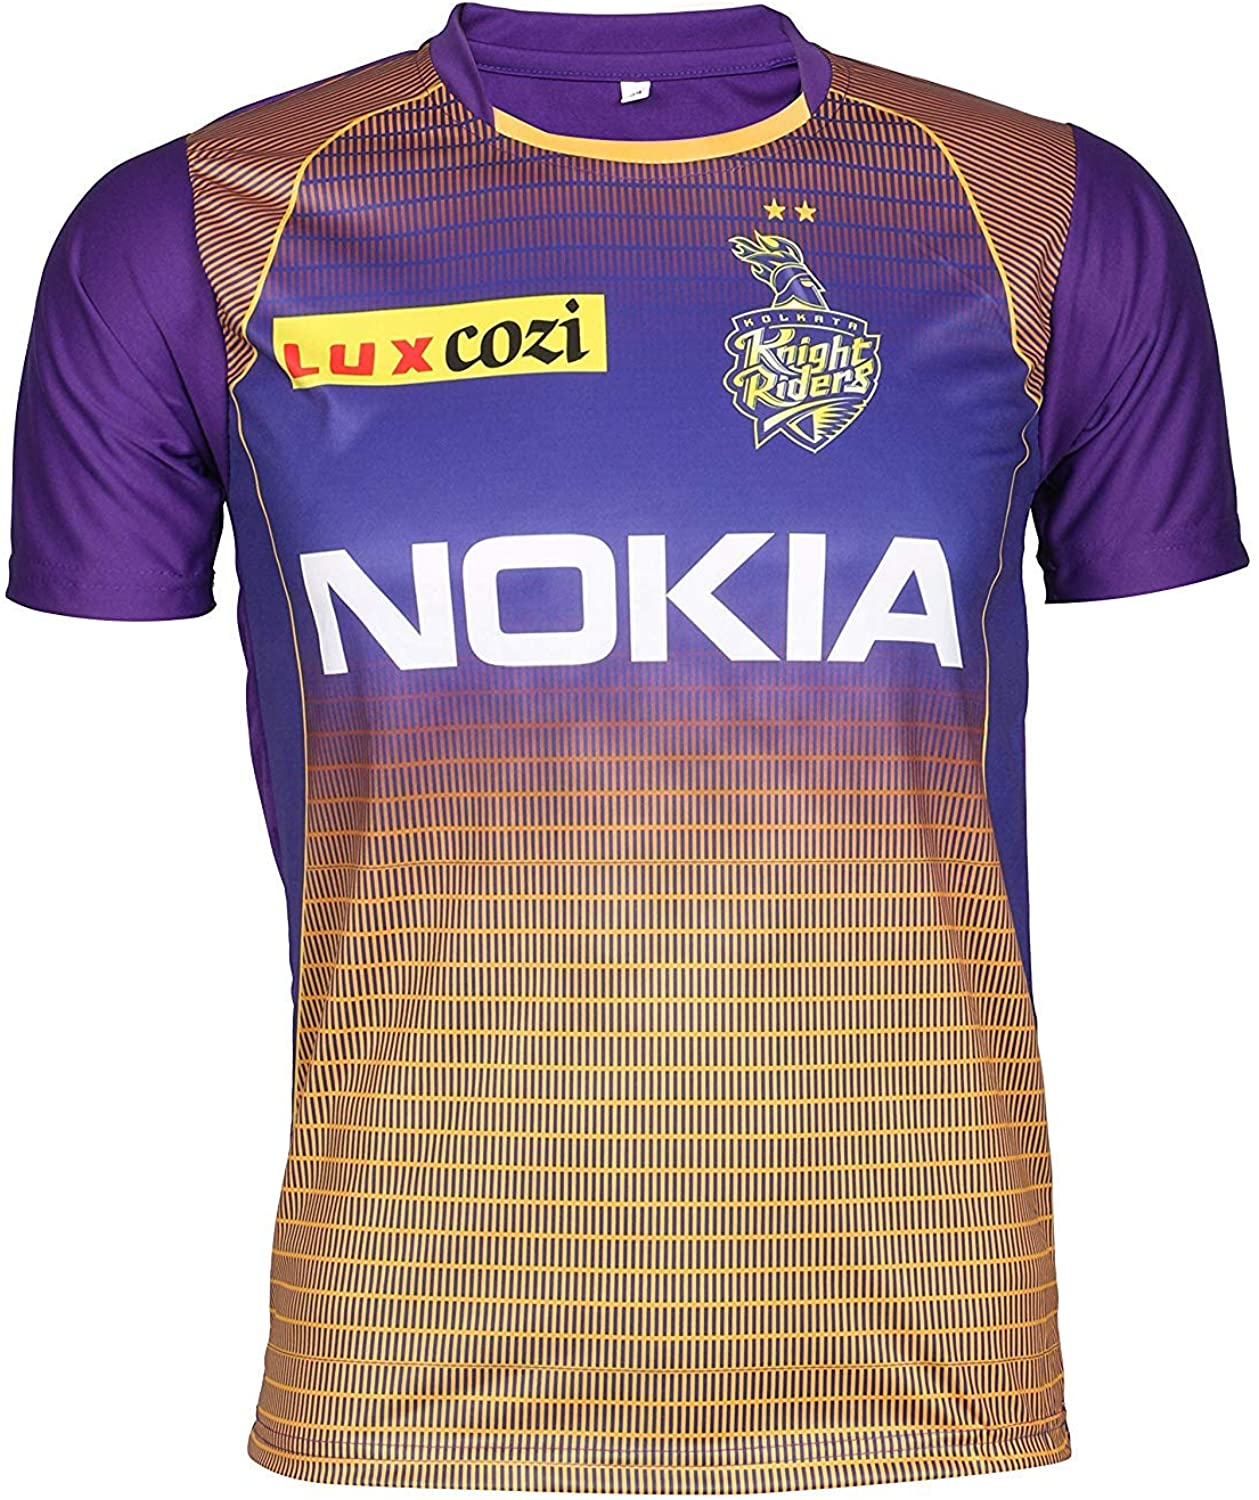 KD Cricket IPL Custom Jersey Supporter Jersey T-Shirt 2020 with Your Choice Name and Number Print (KKR,34)